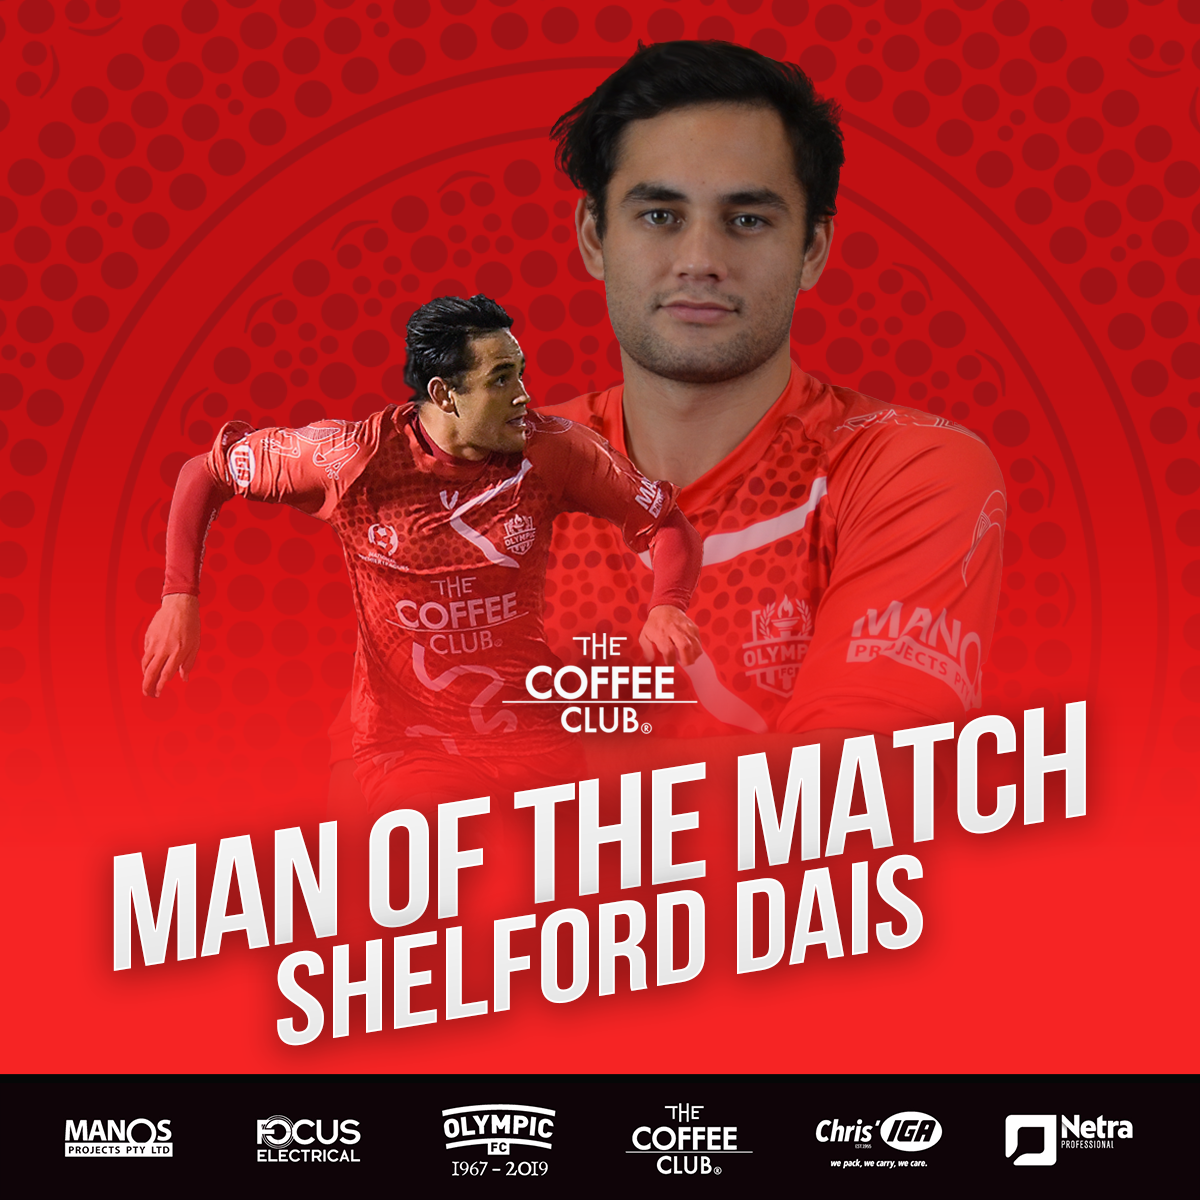 Shelford Dais earns Round 24 Coffee Club Man of the Match